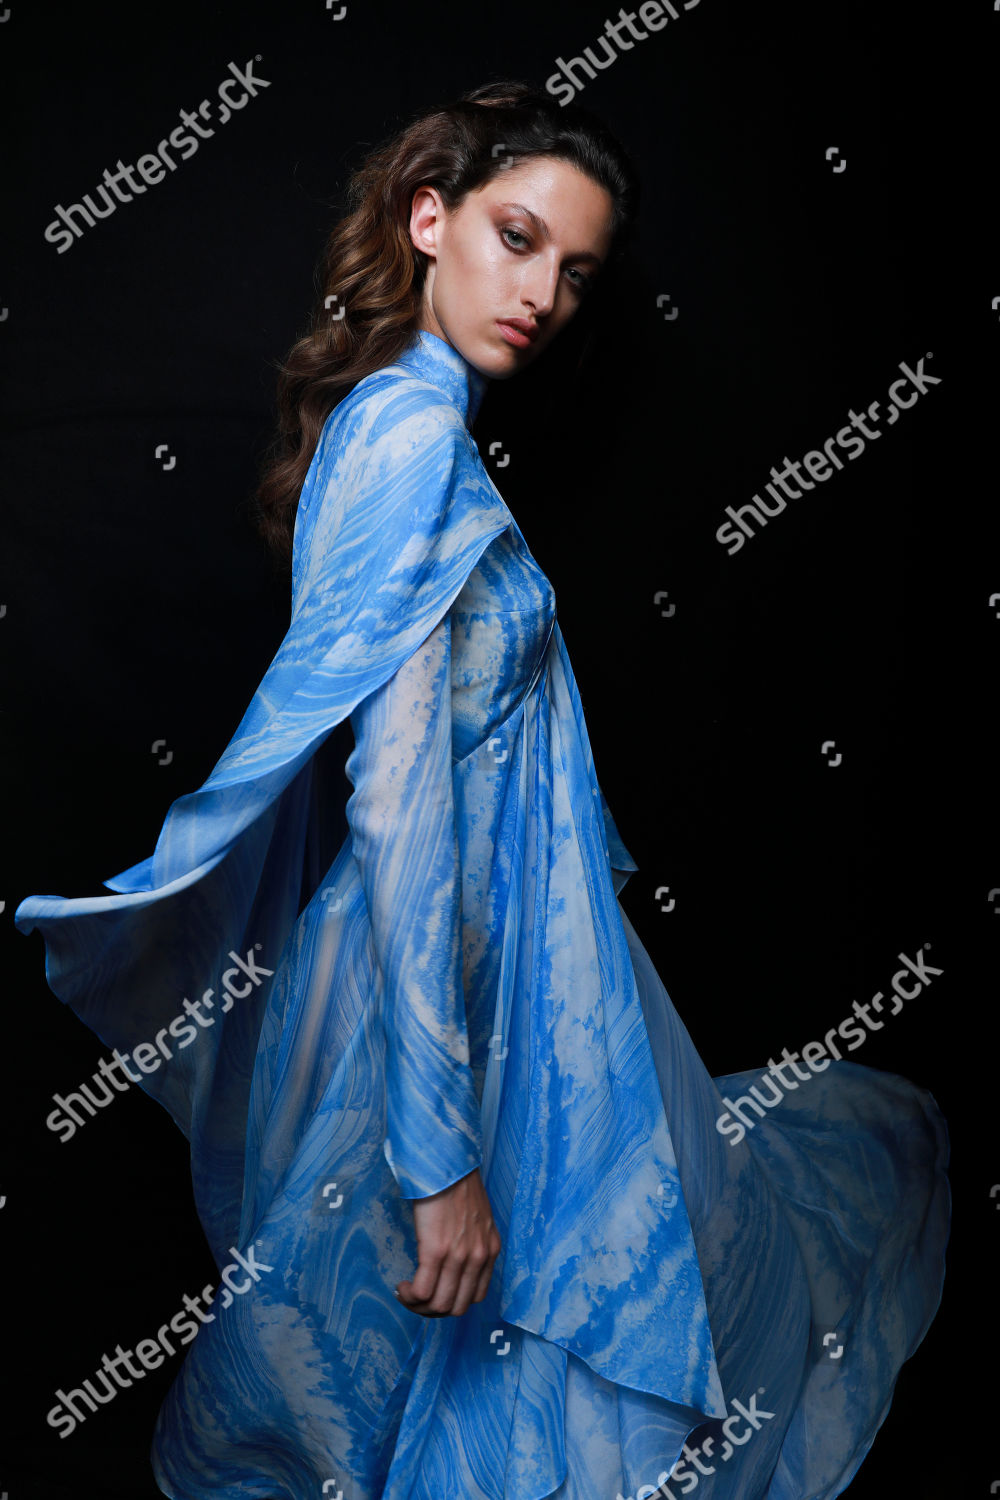 Models Editorial Stock Photo Stock Image | Shutterstock